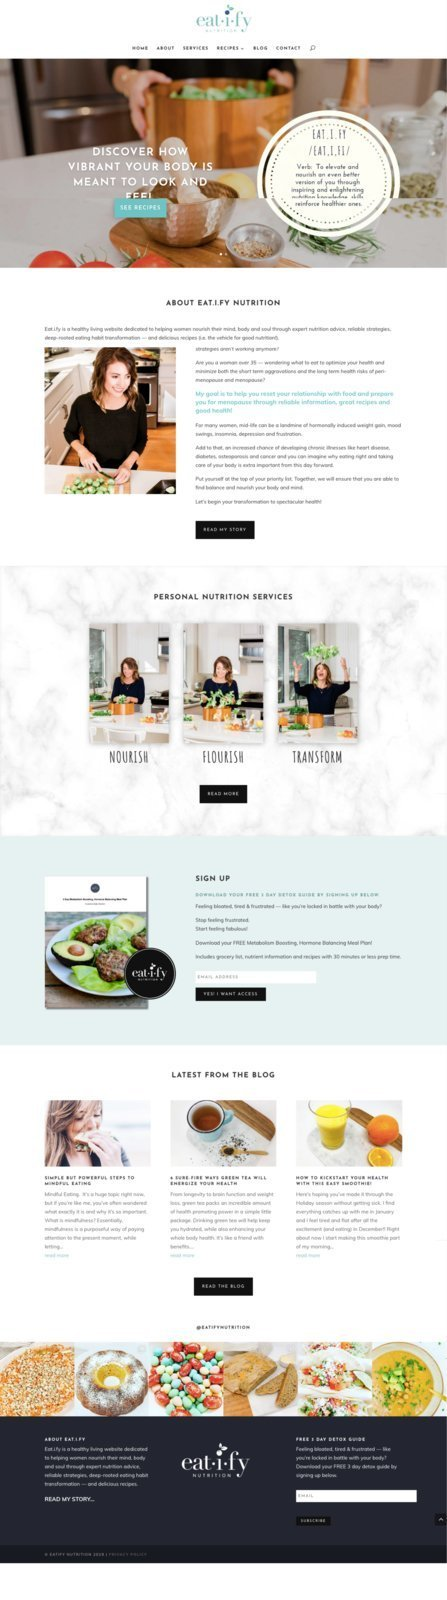 Nutritionist and Hypnotherapist HomePage Design